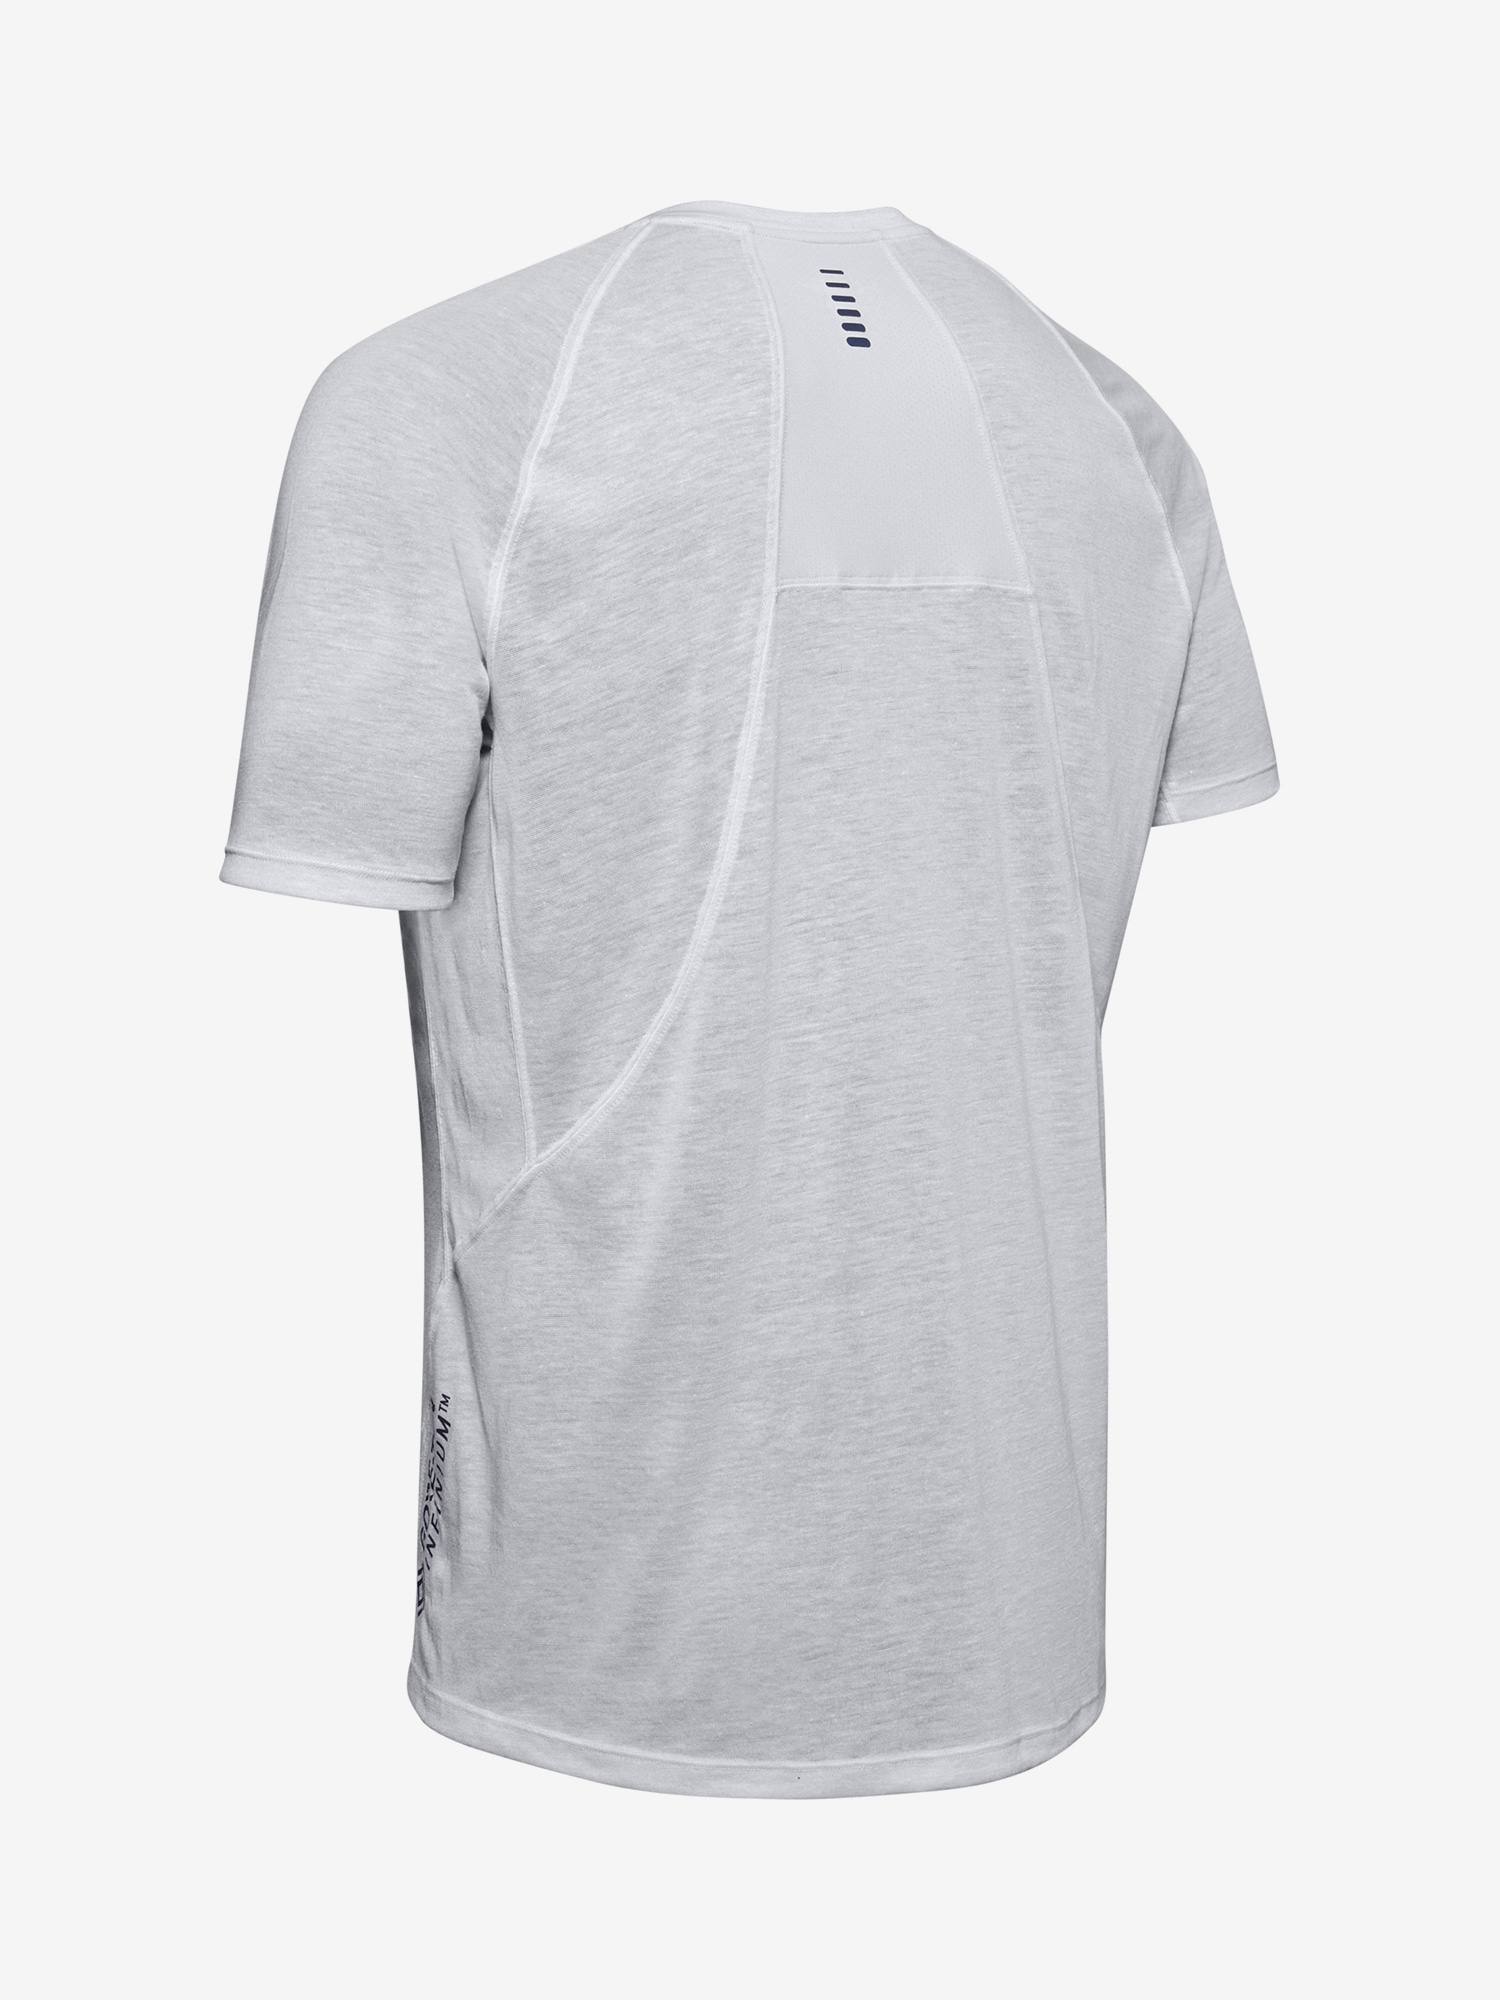 Tričko Under Armour M Breeze Short Sleeve Tee (4)